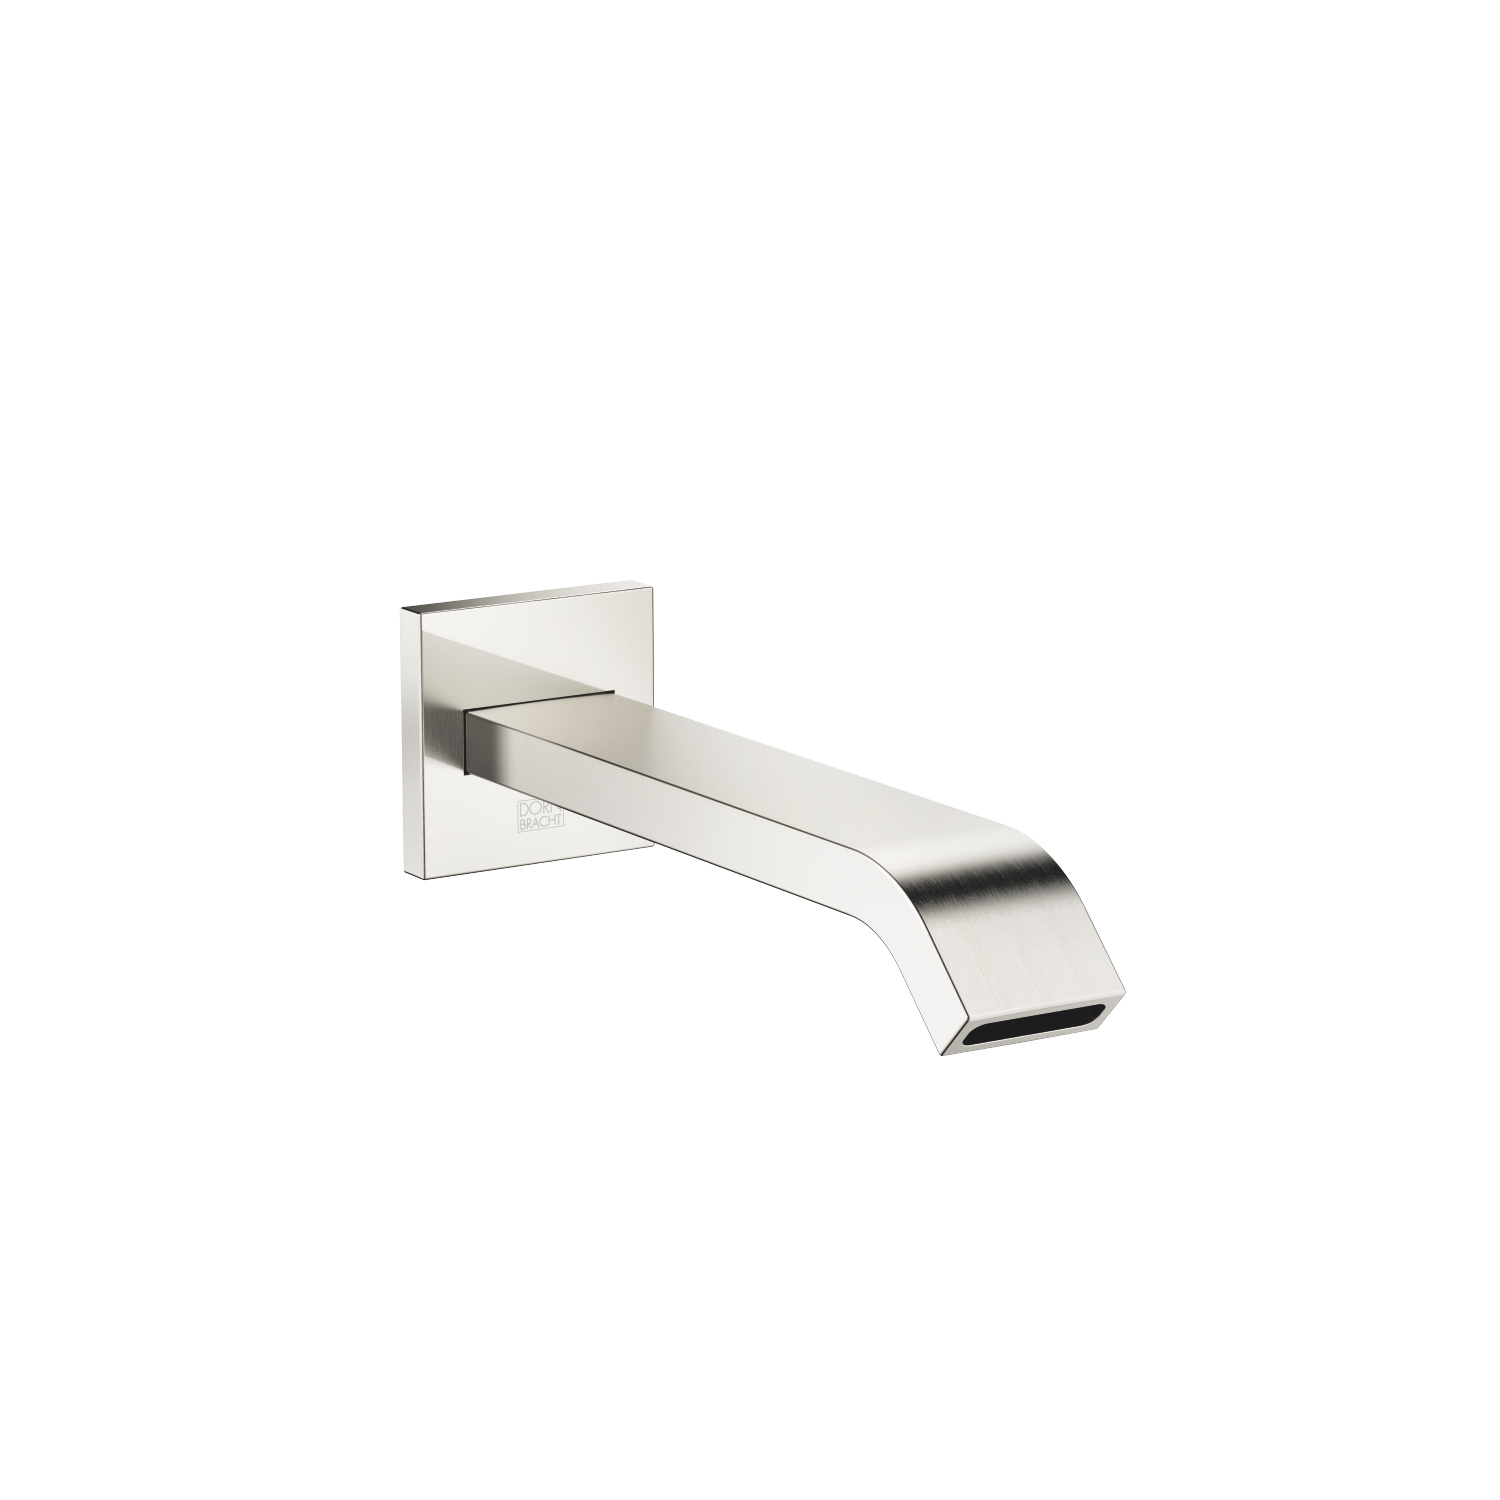 bath spout for wall mounting - platinum matt